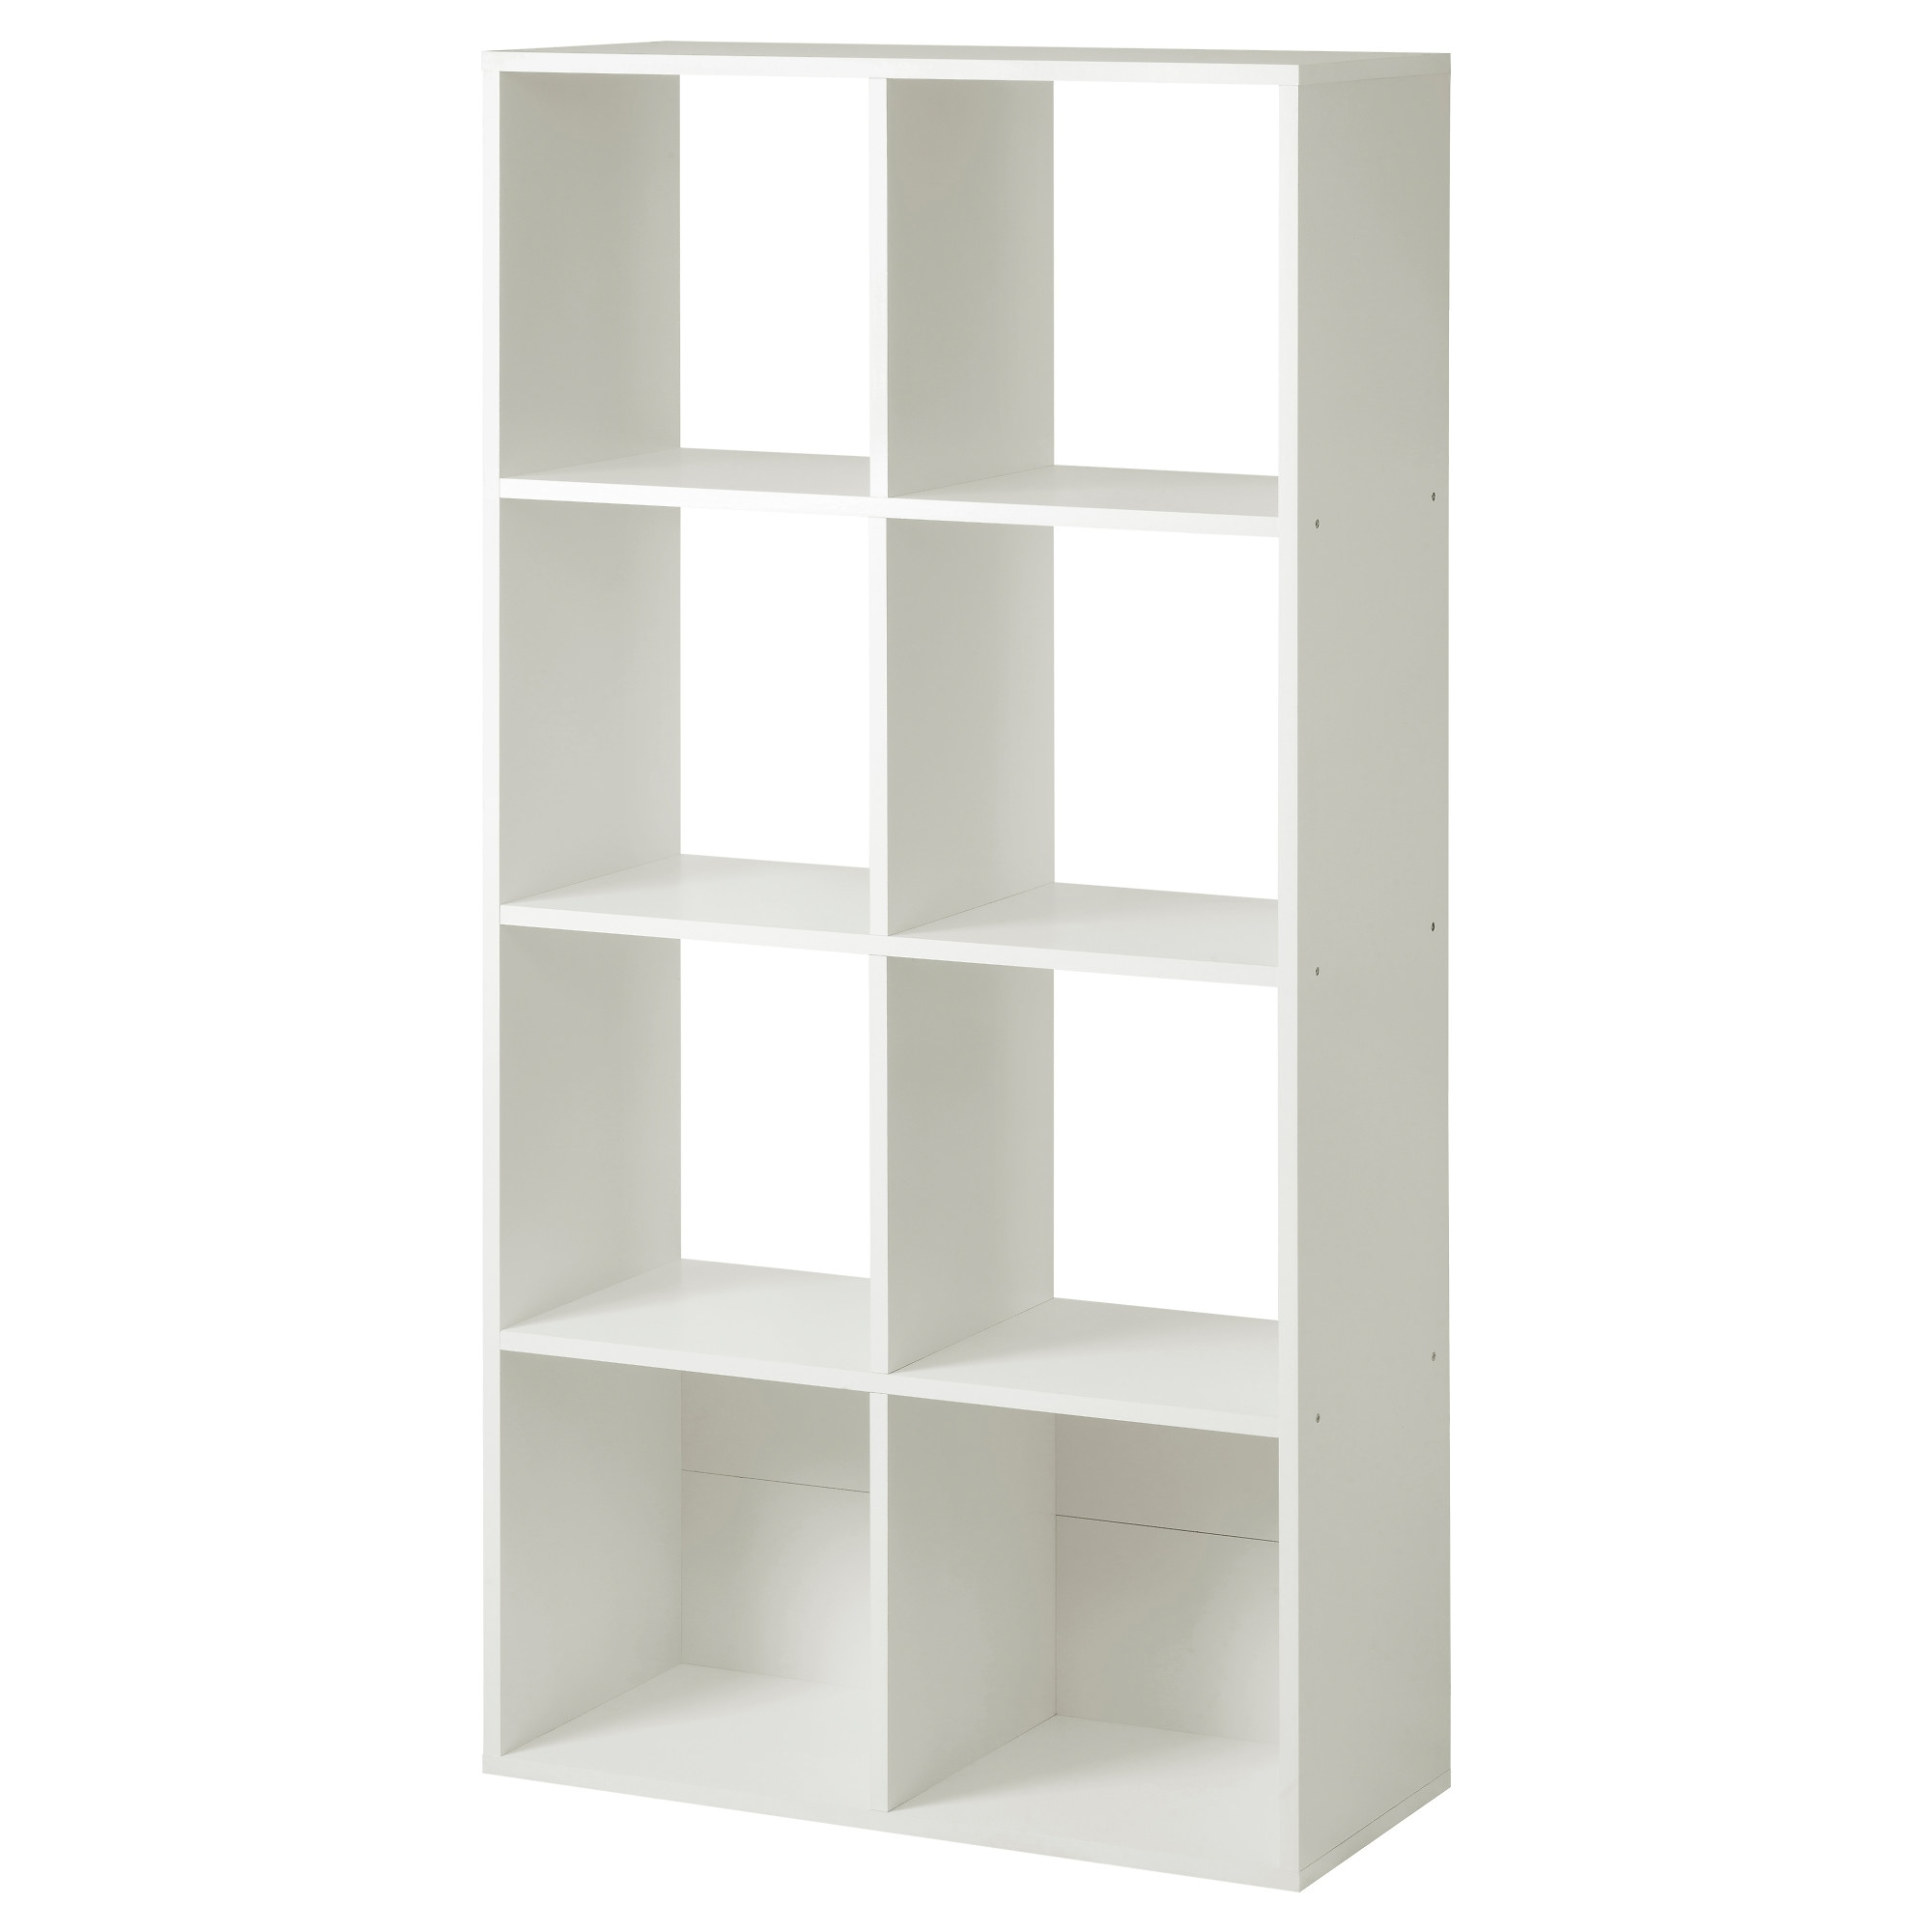 BITRÄDE Shelf unit - IKEA